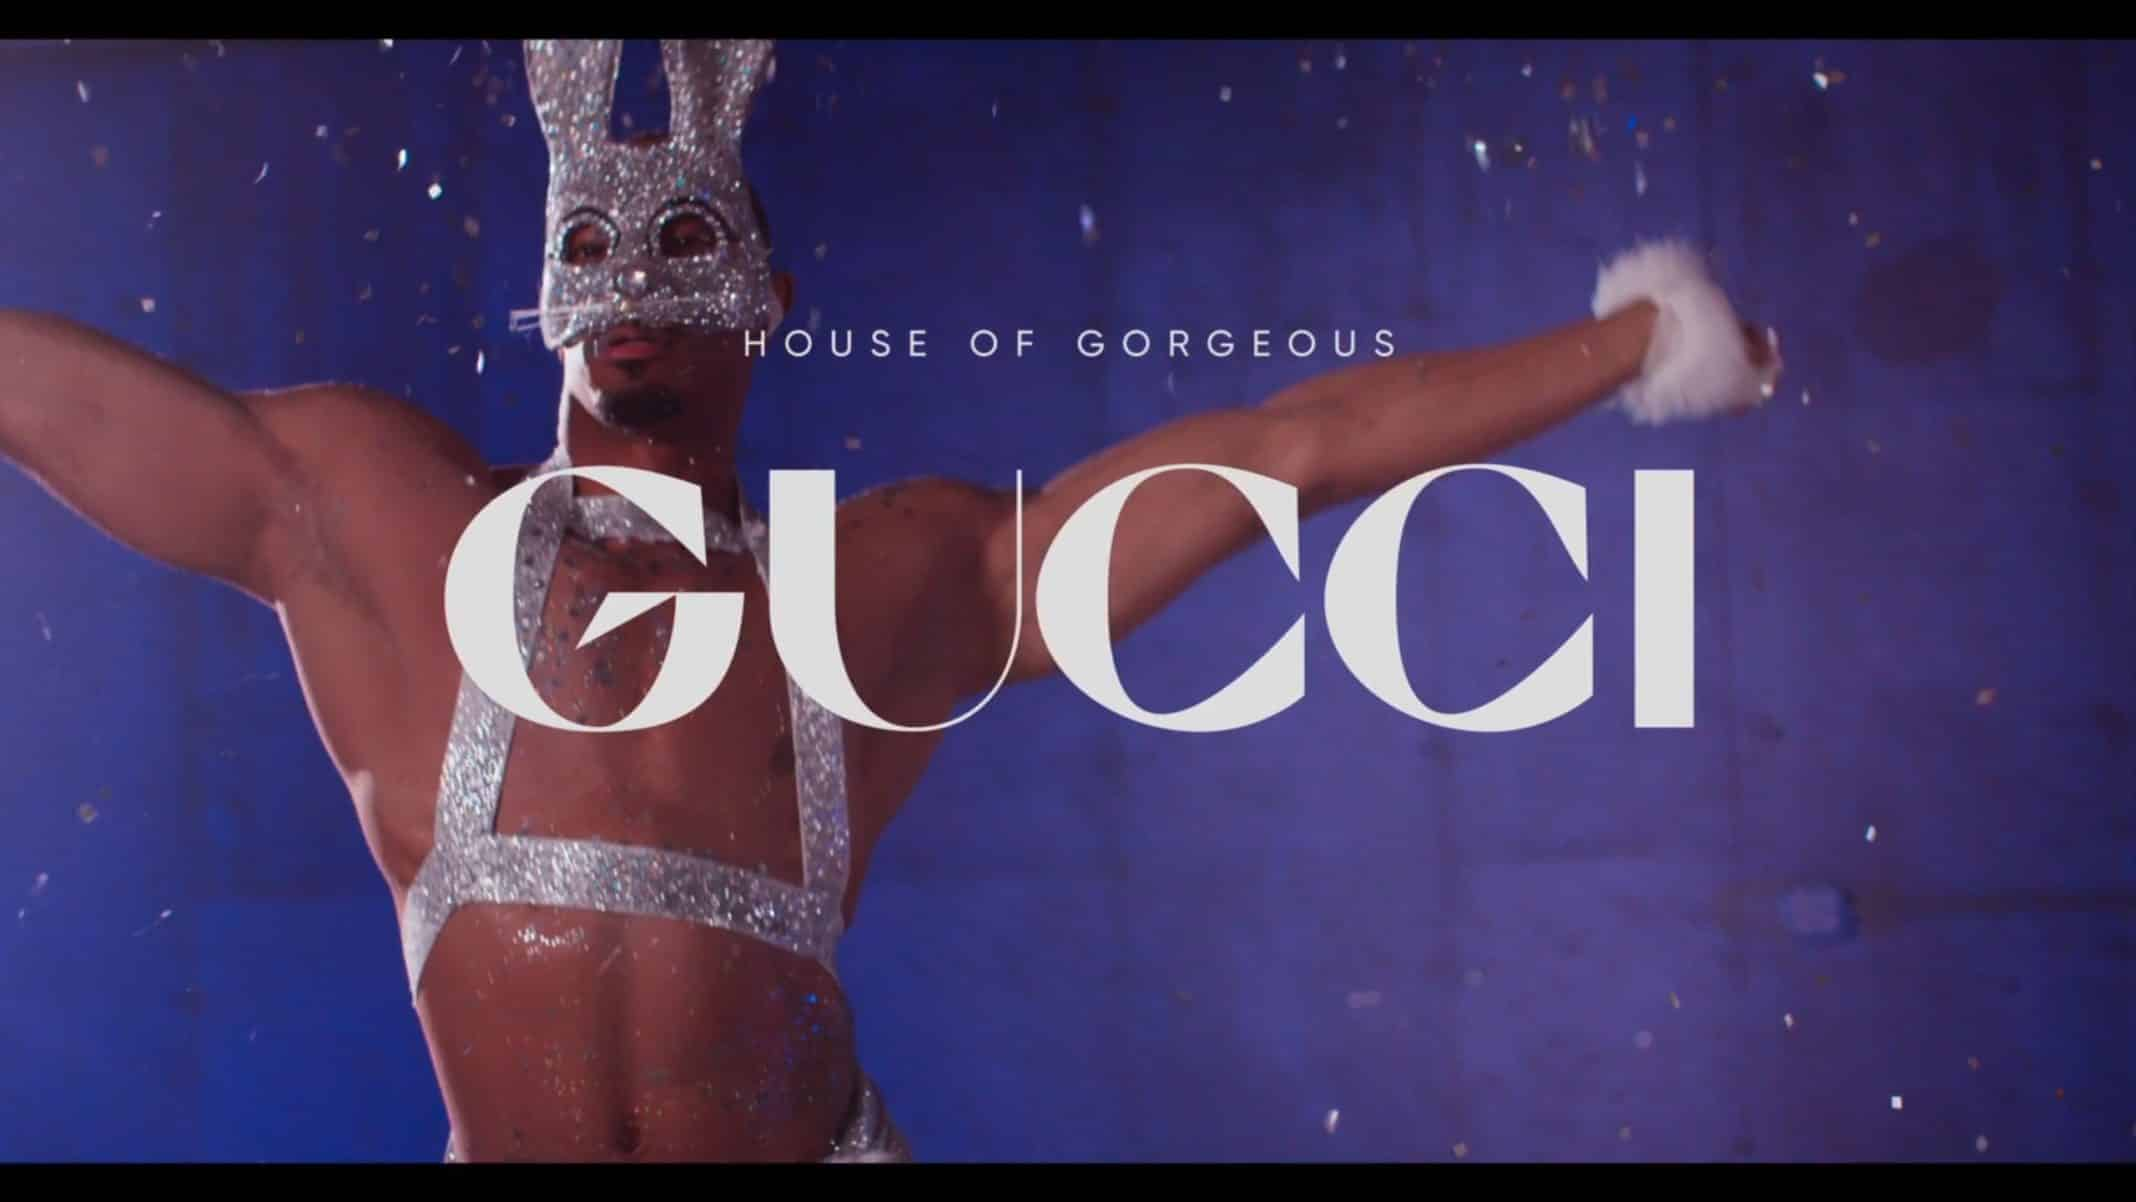 House of Gorgeous Gucci promotional image.